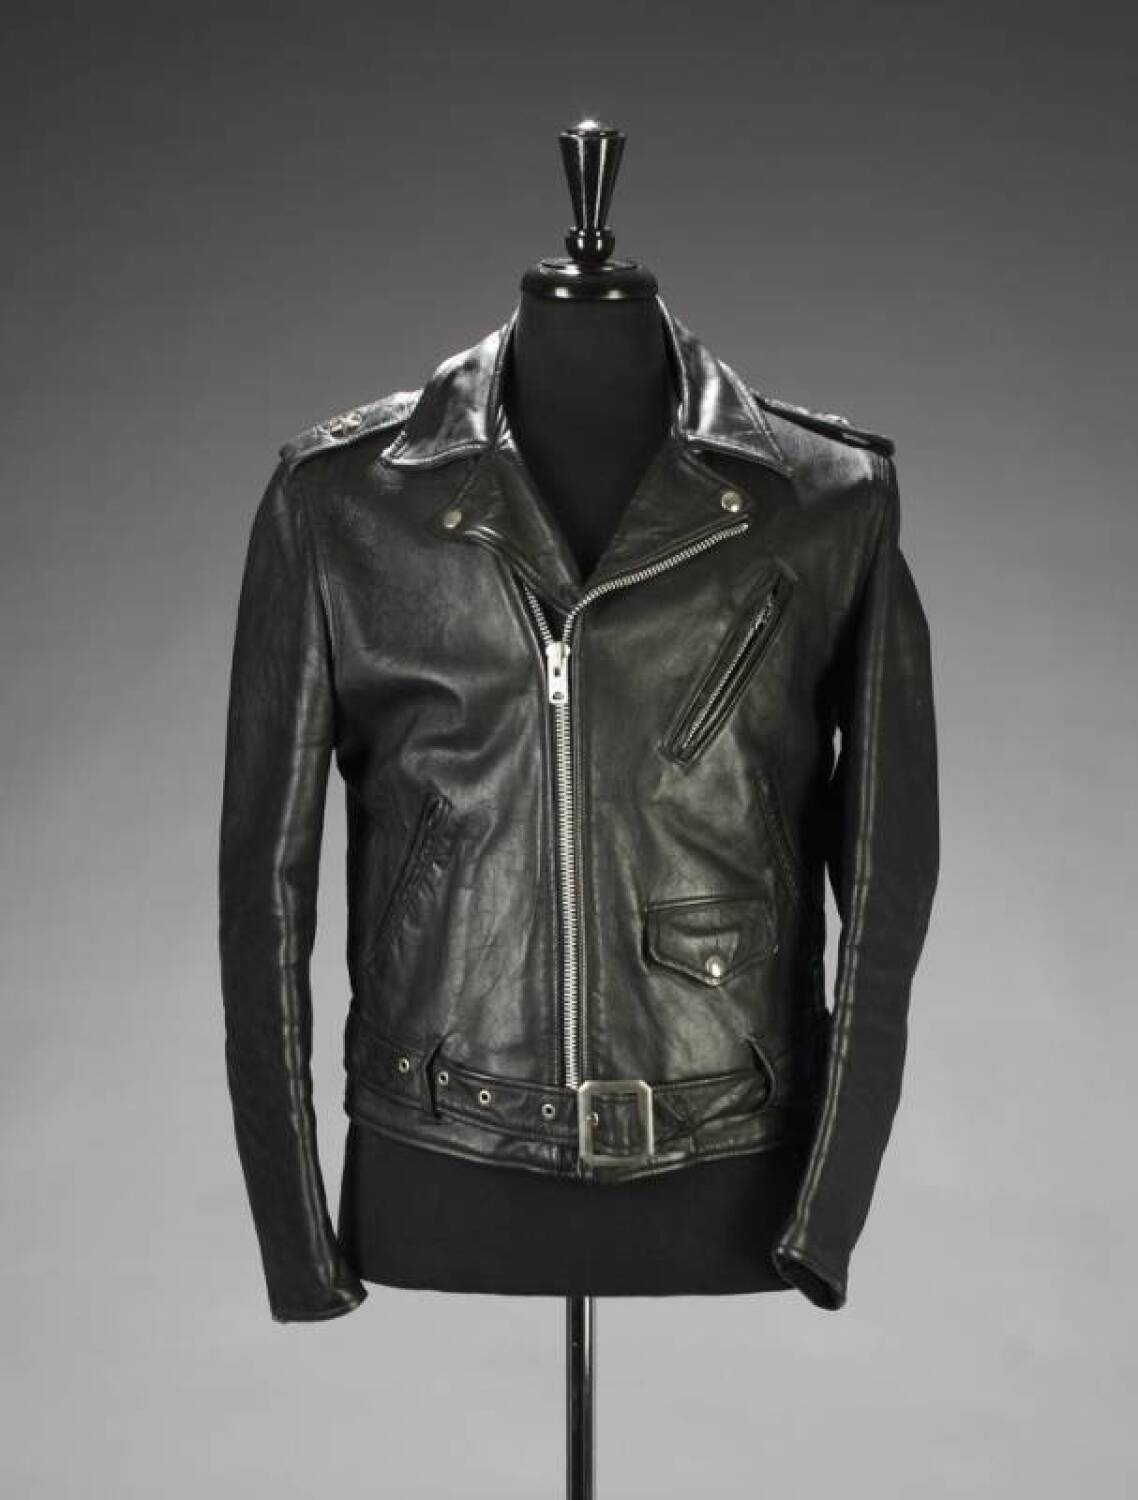 JOE WALSH LEATHER JACKET WORN ON ALBUM COVER - Current price: $0